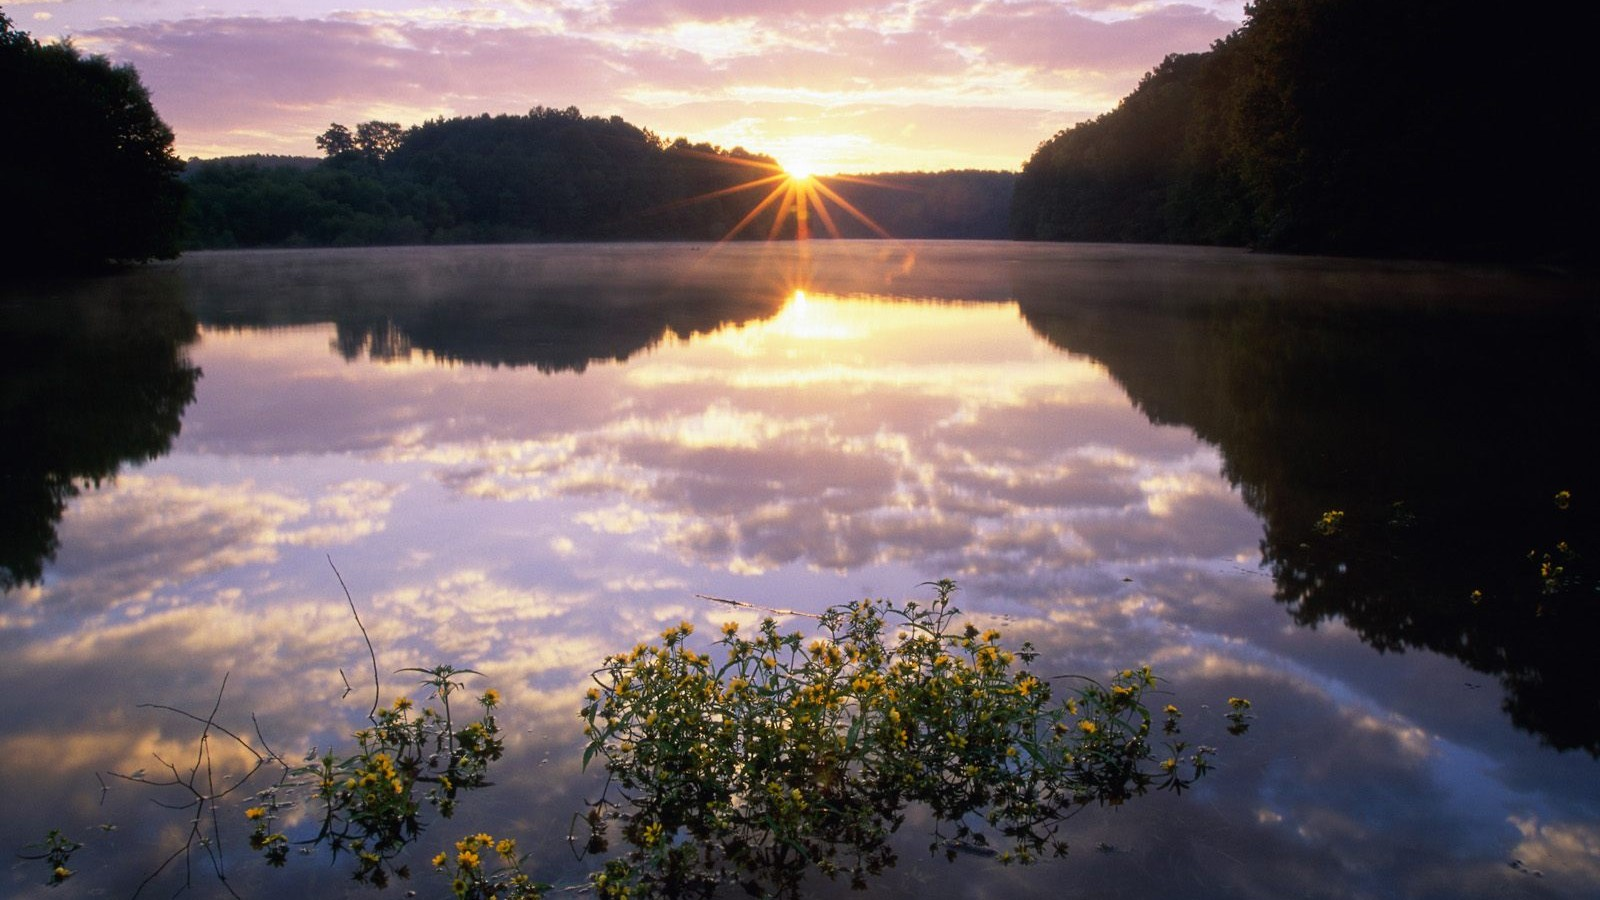 The river is mirror-like, and there is also flowers on the surface, the sun's rising, all of them compose quite a scene.